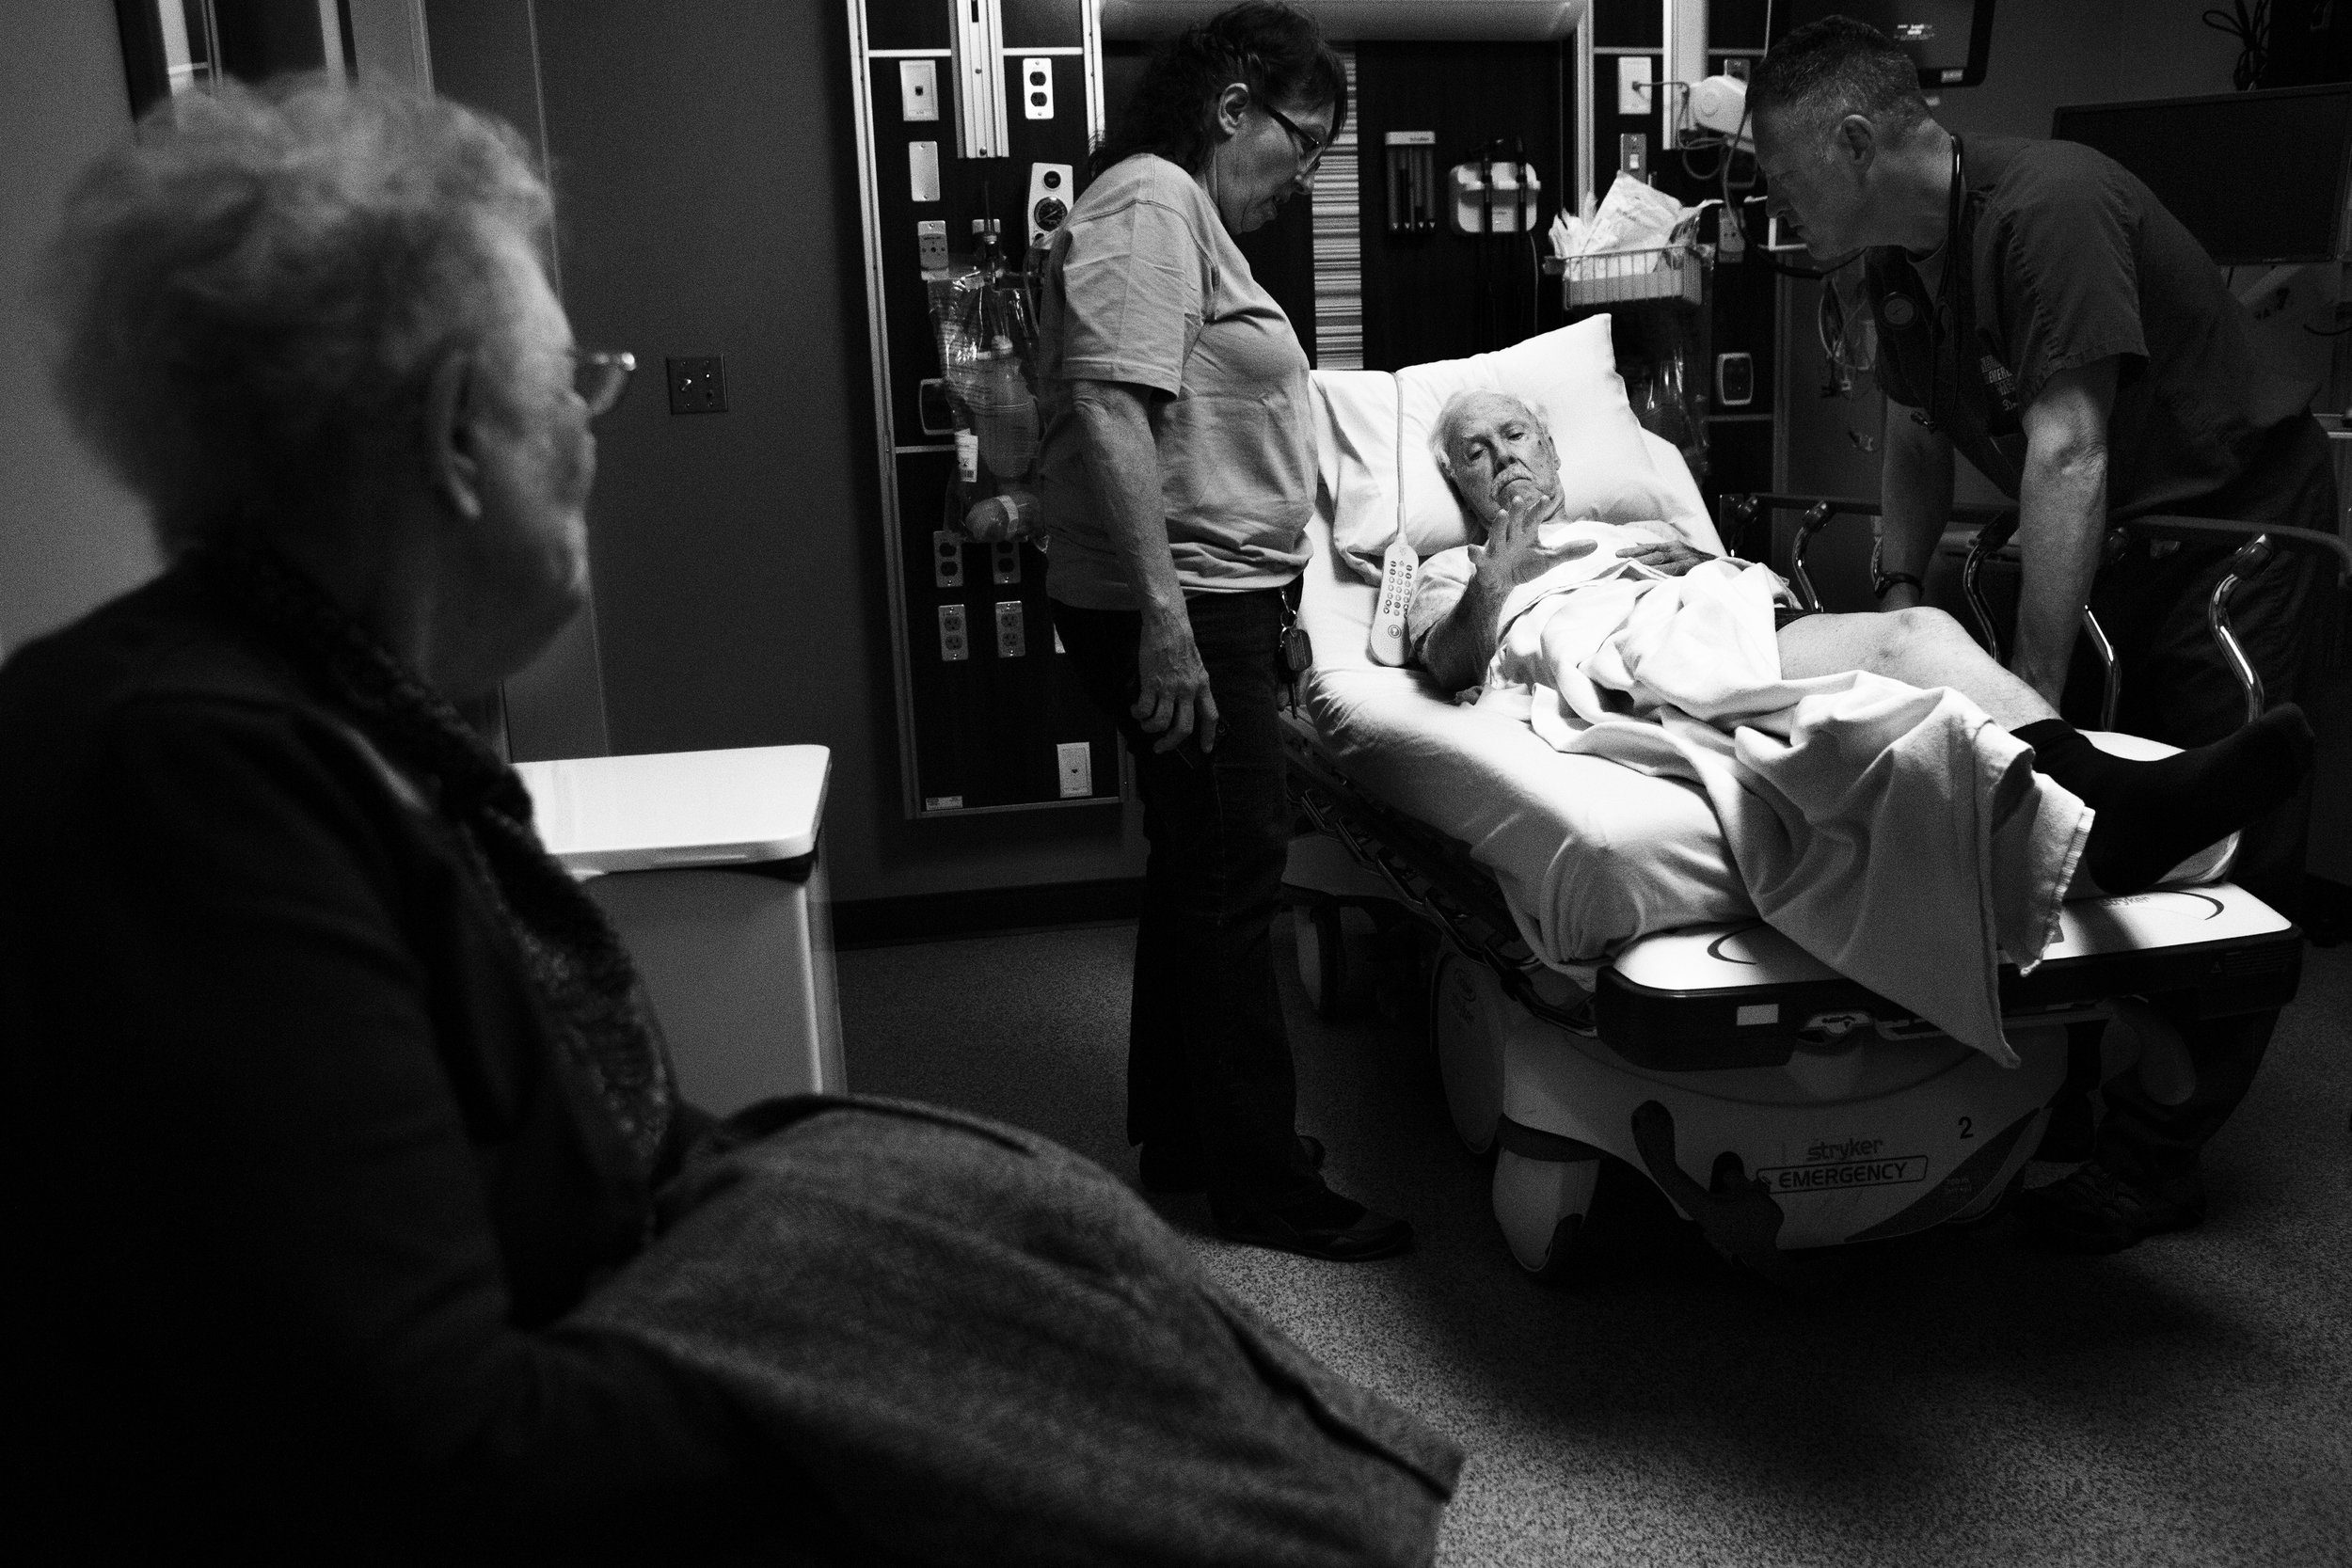 After falling one morning, Eloise and the couple's caretaker, Kathleen, check Ward into a local emergency room. He sits in a hospital bed, hands outstretched. Unable to assist her husband in the situation, Eloise sits in the corner of the hospital room, watching their caretaker and a doctor instead help him.